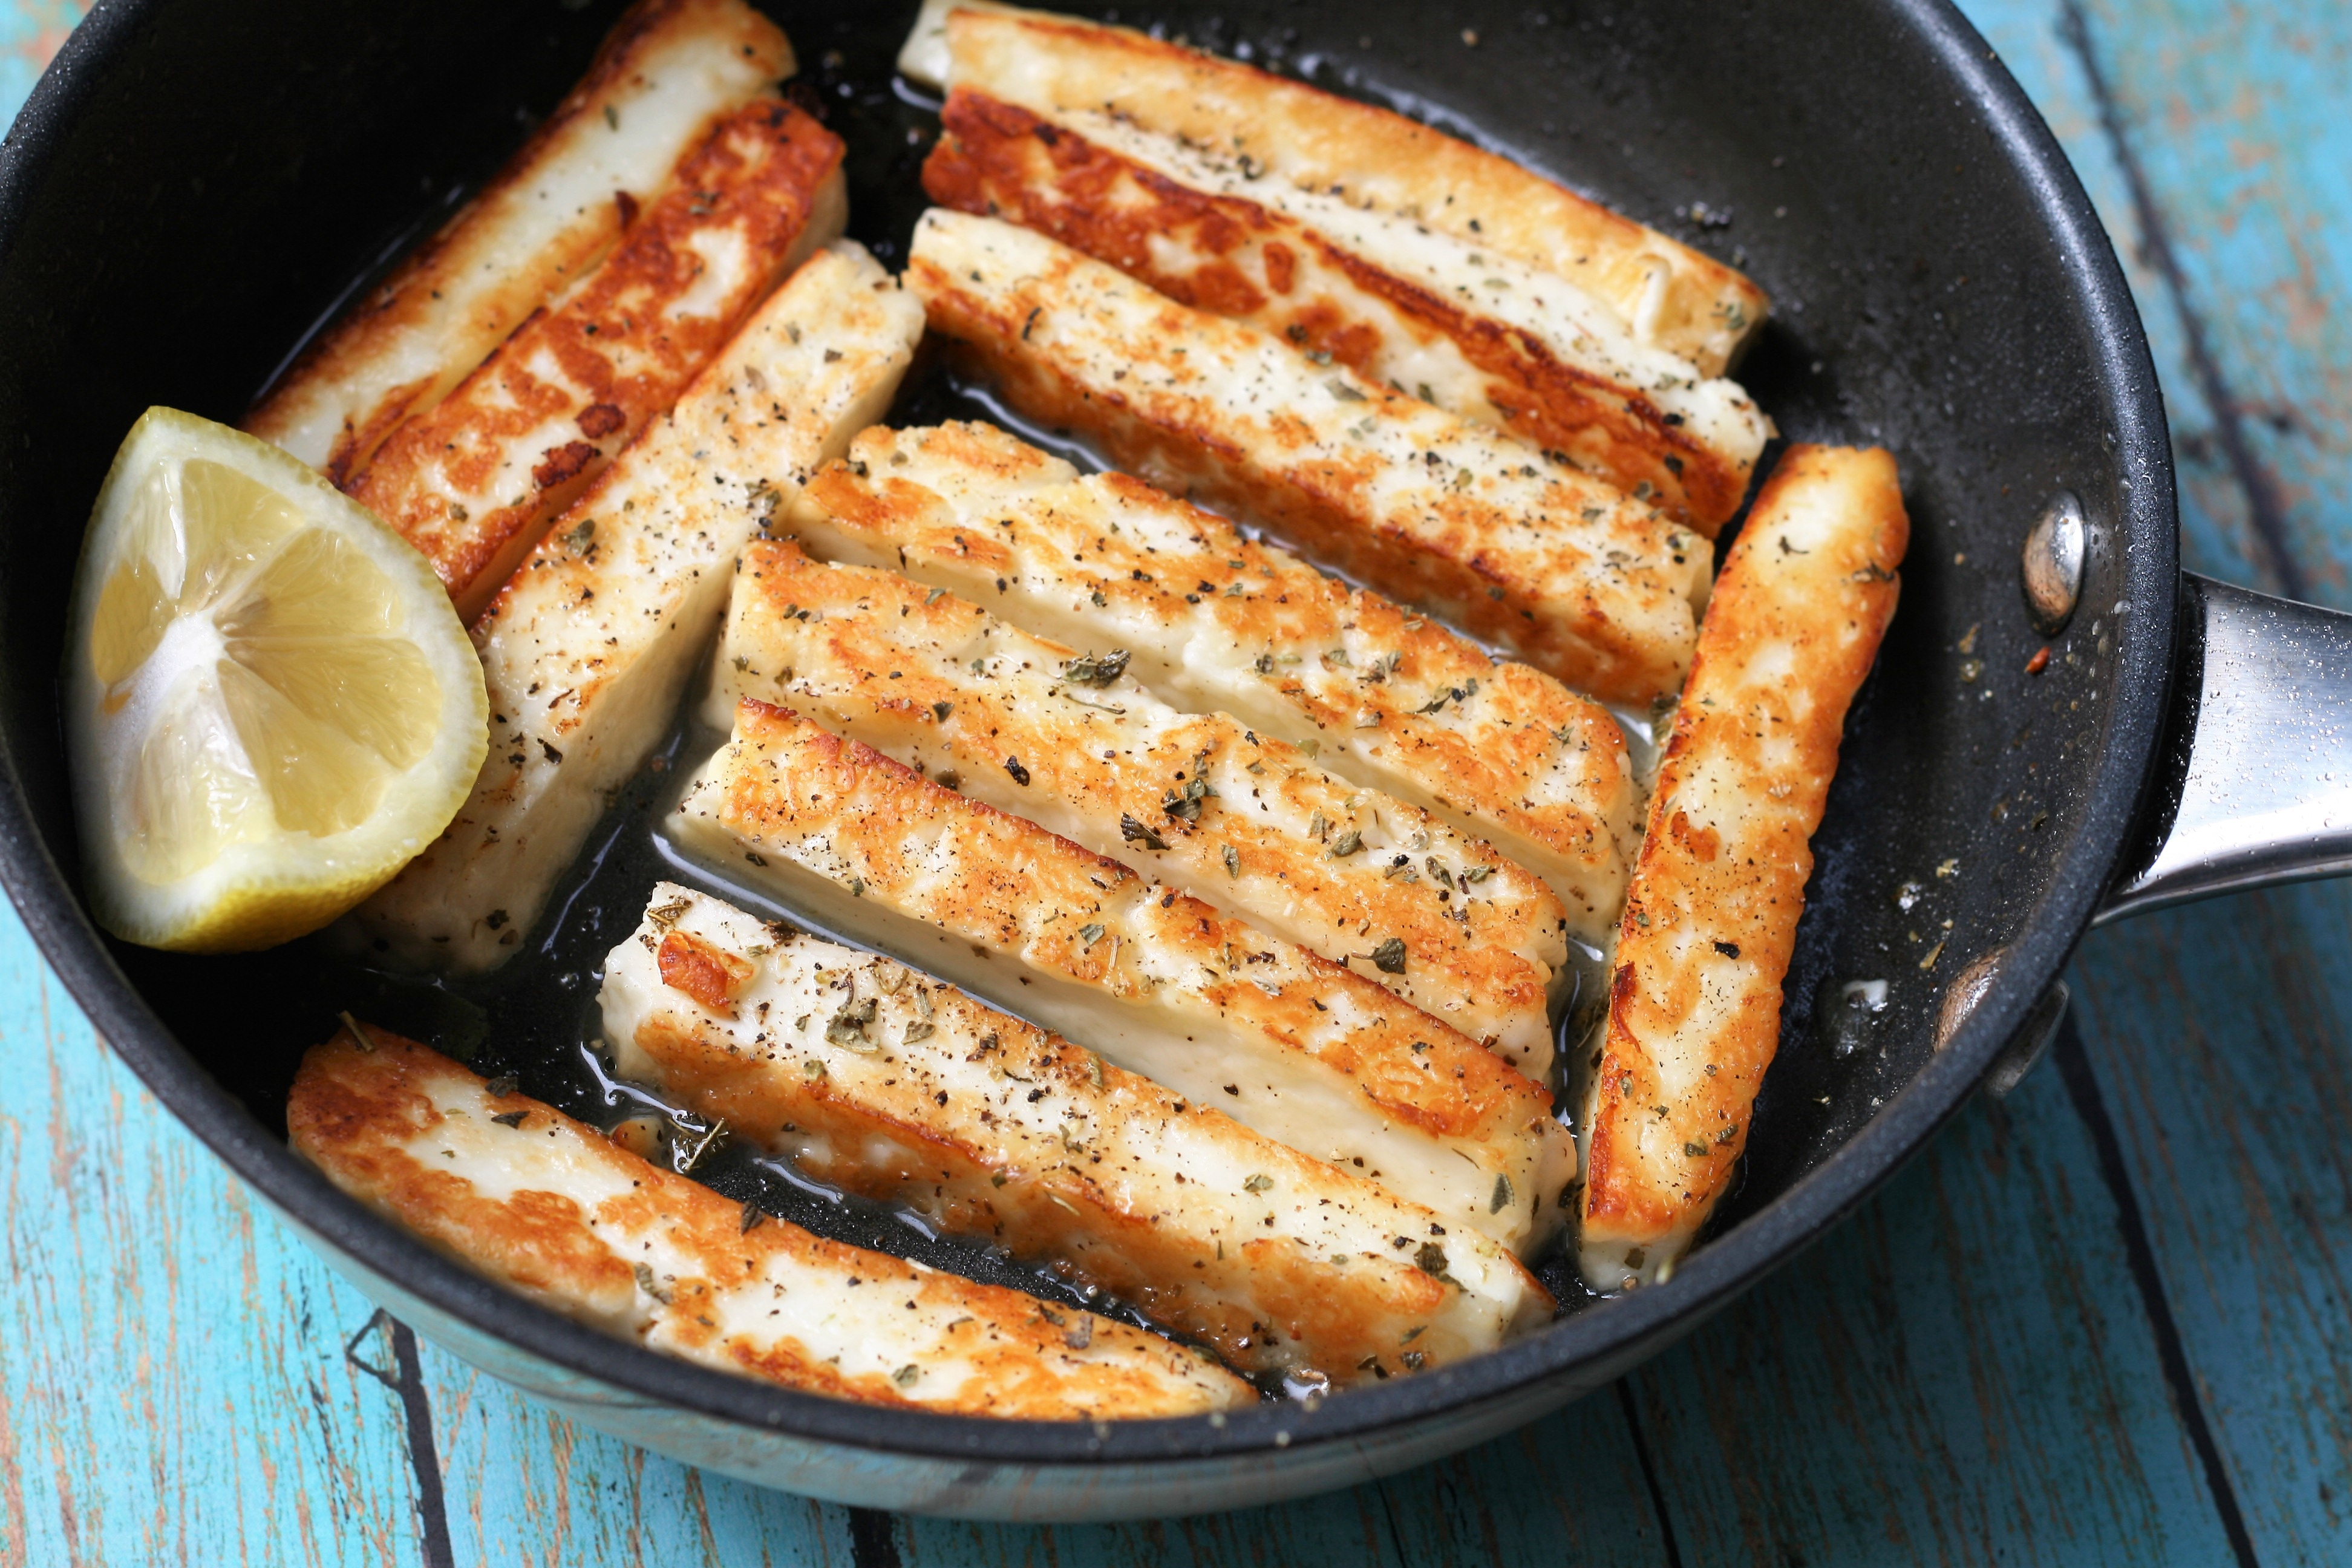 Halloumi Cheese Fingers